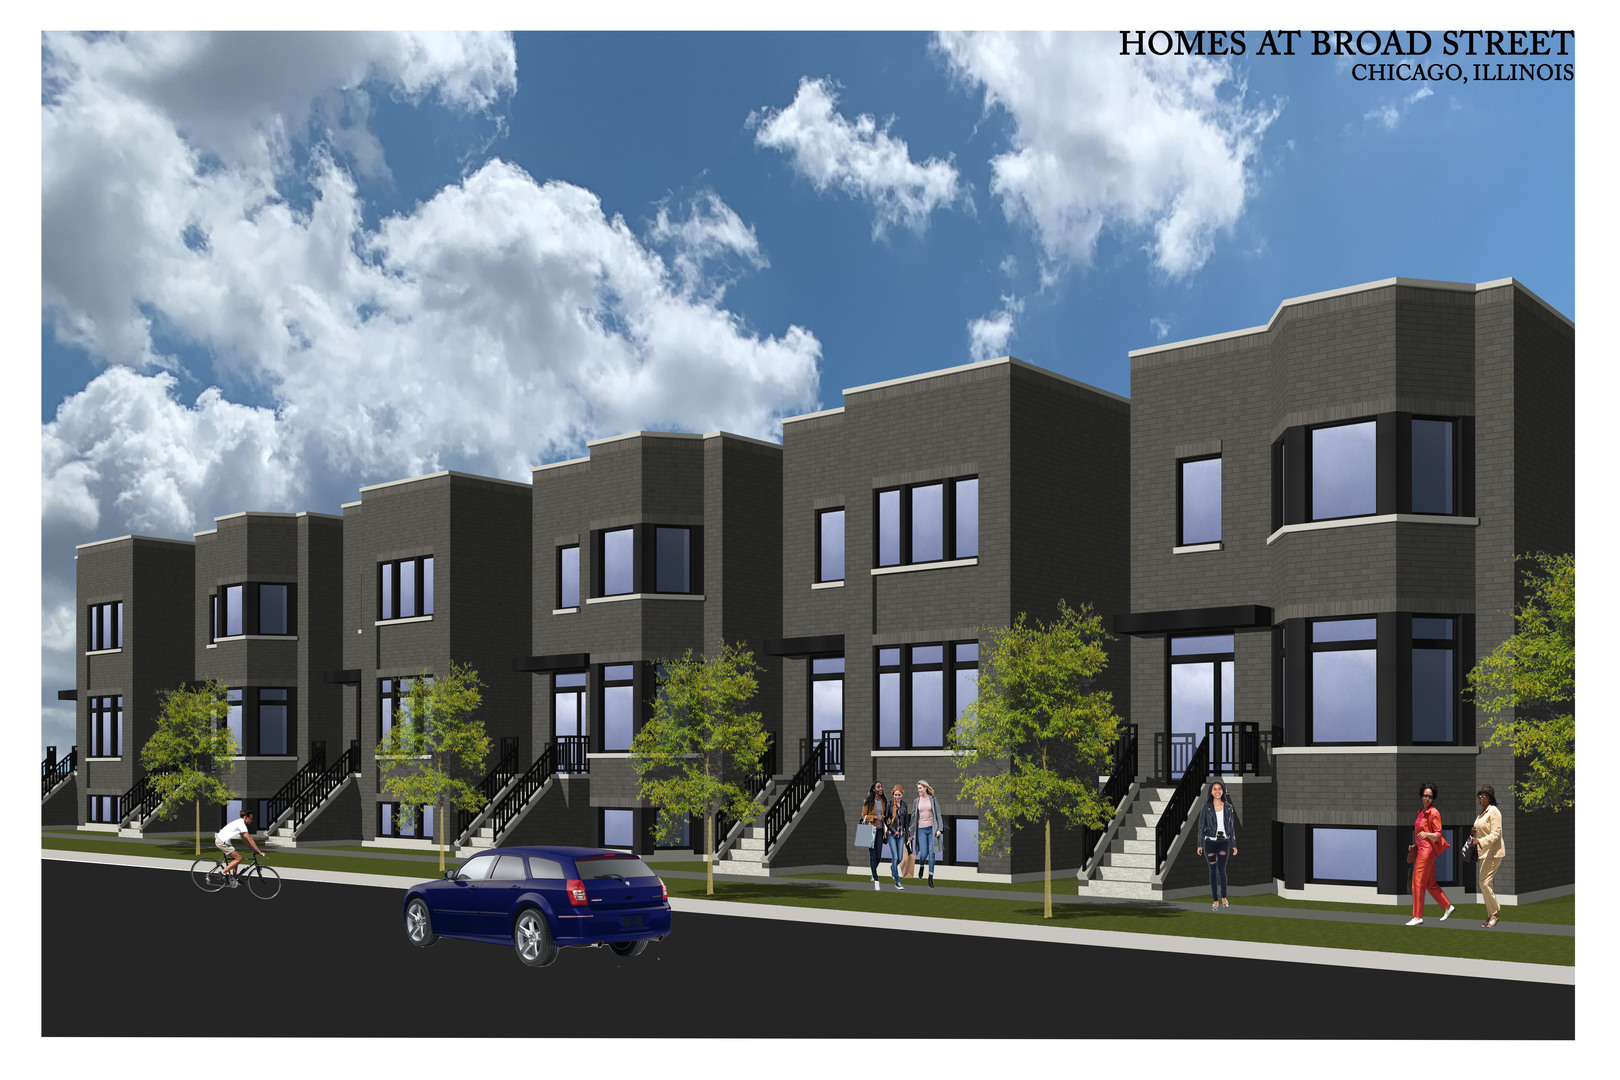 SOLD BEFORE PROCESSING! 6 new construction single family homes with huge roof decks! Brick homes wit